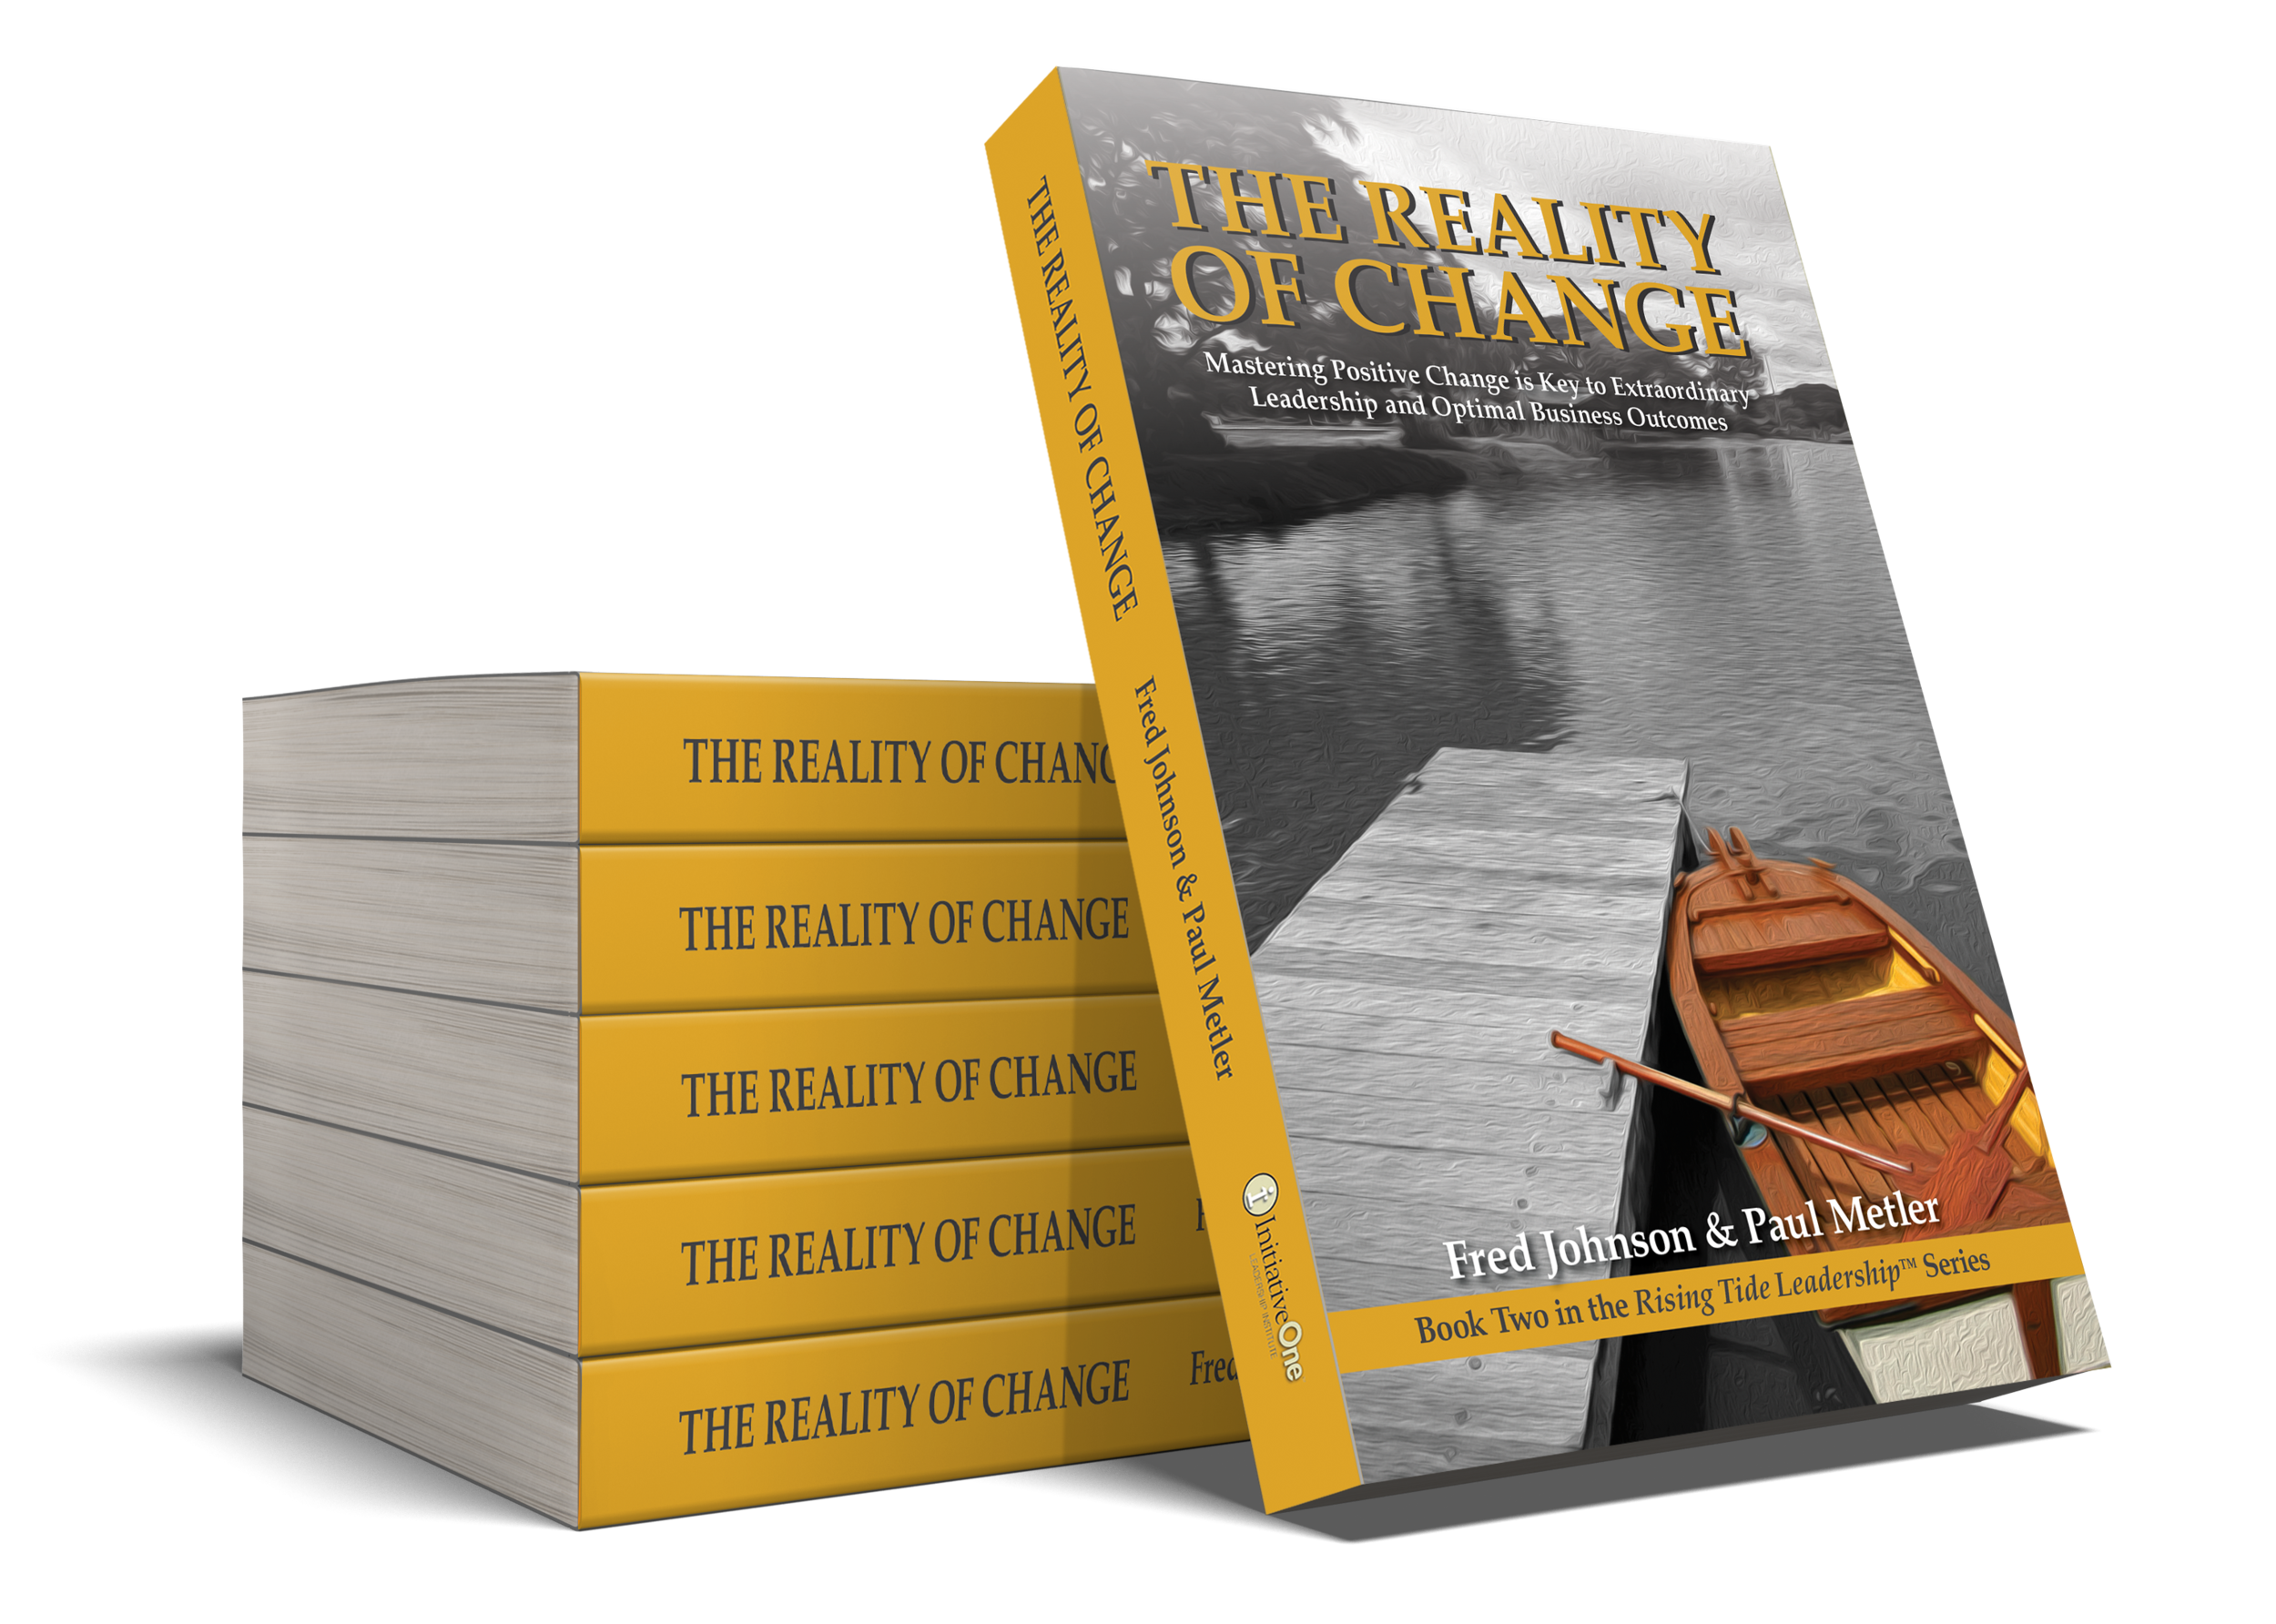 TheRealityOfChange_books.png